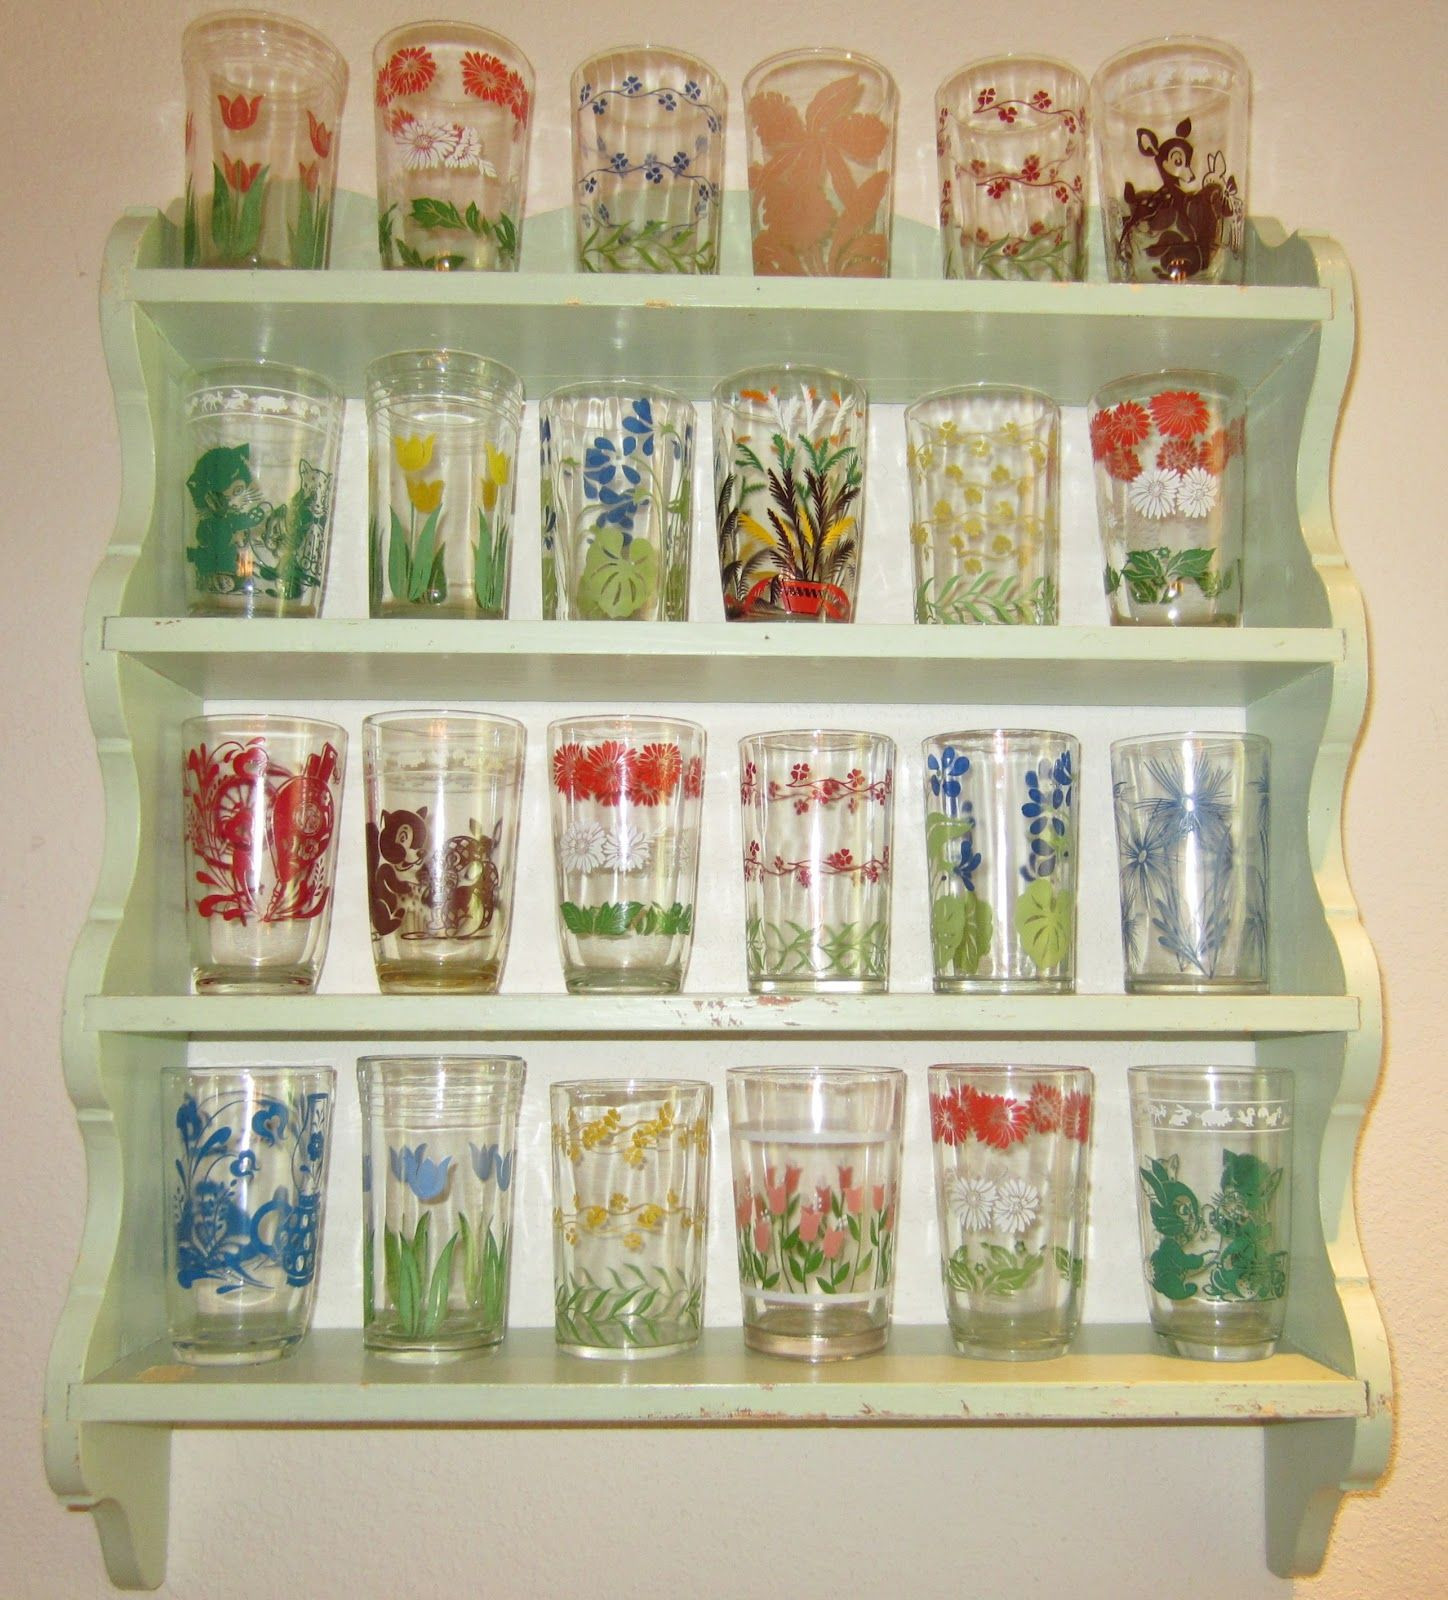 hoosier glass vase 4094 of i need a collection vintage juice glasses i need a shelf like with regard to i need a collection vintage juice glasses i need a shelf like this to display my collection